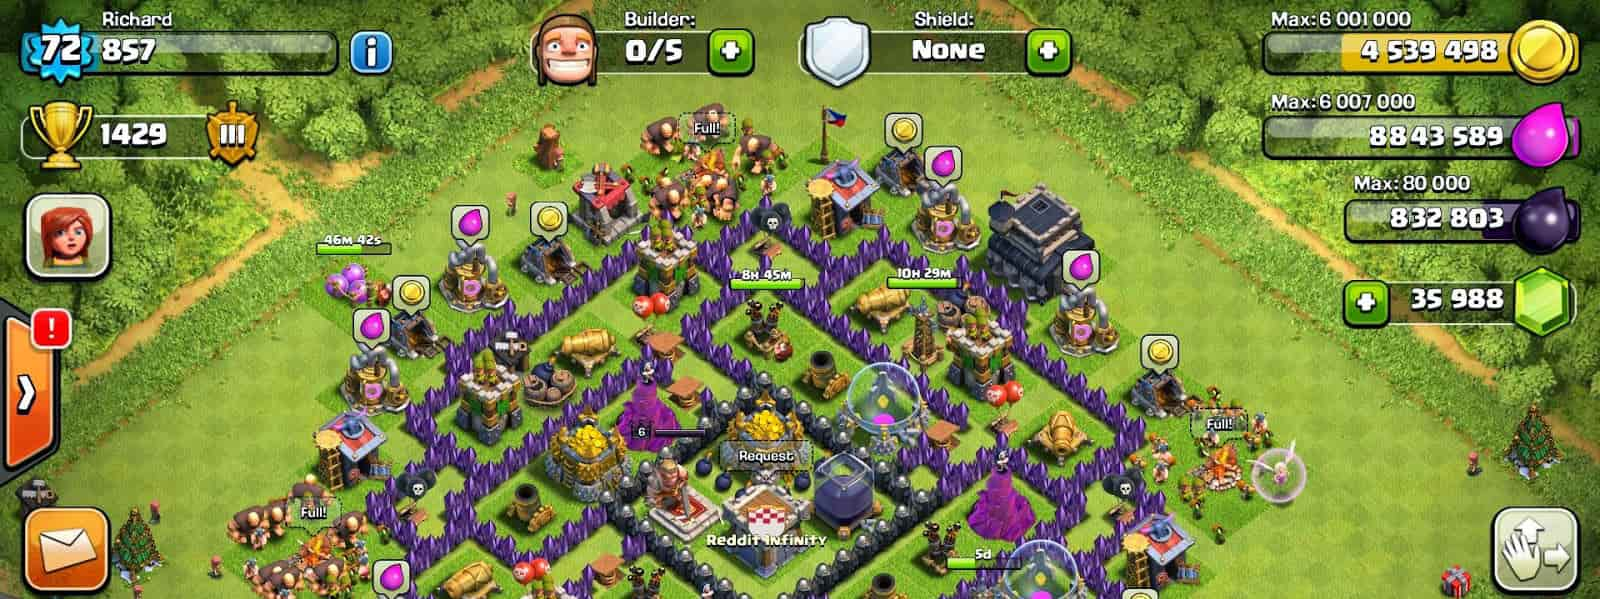 hack clash of clans mod apk free